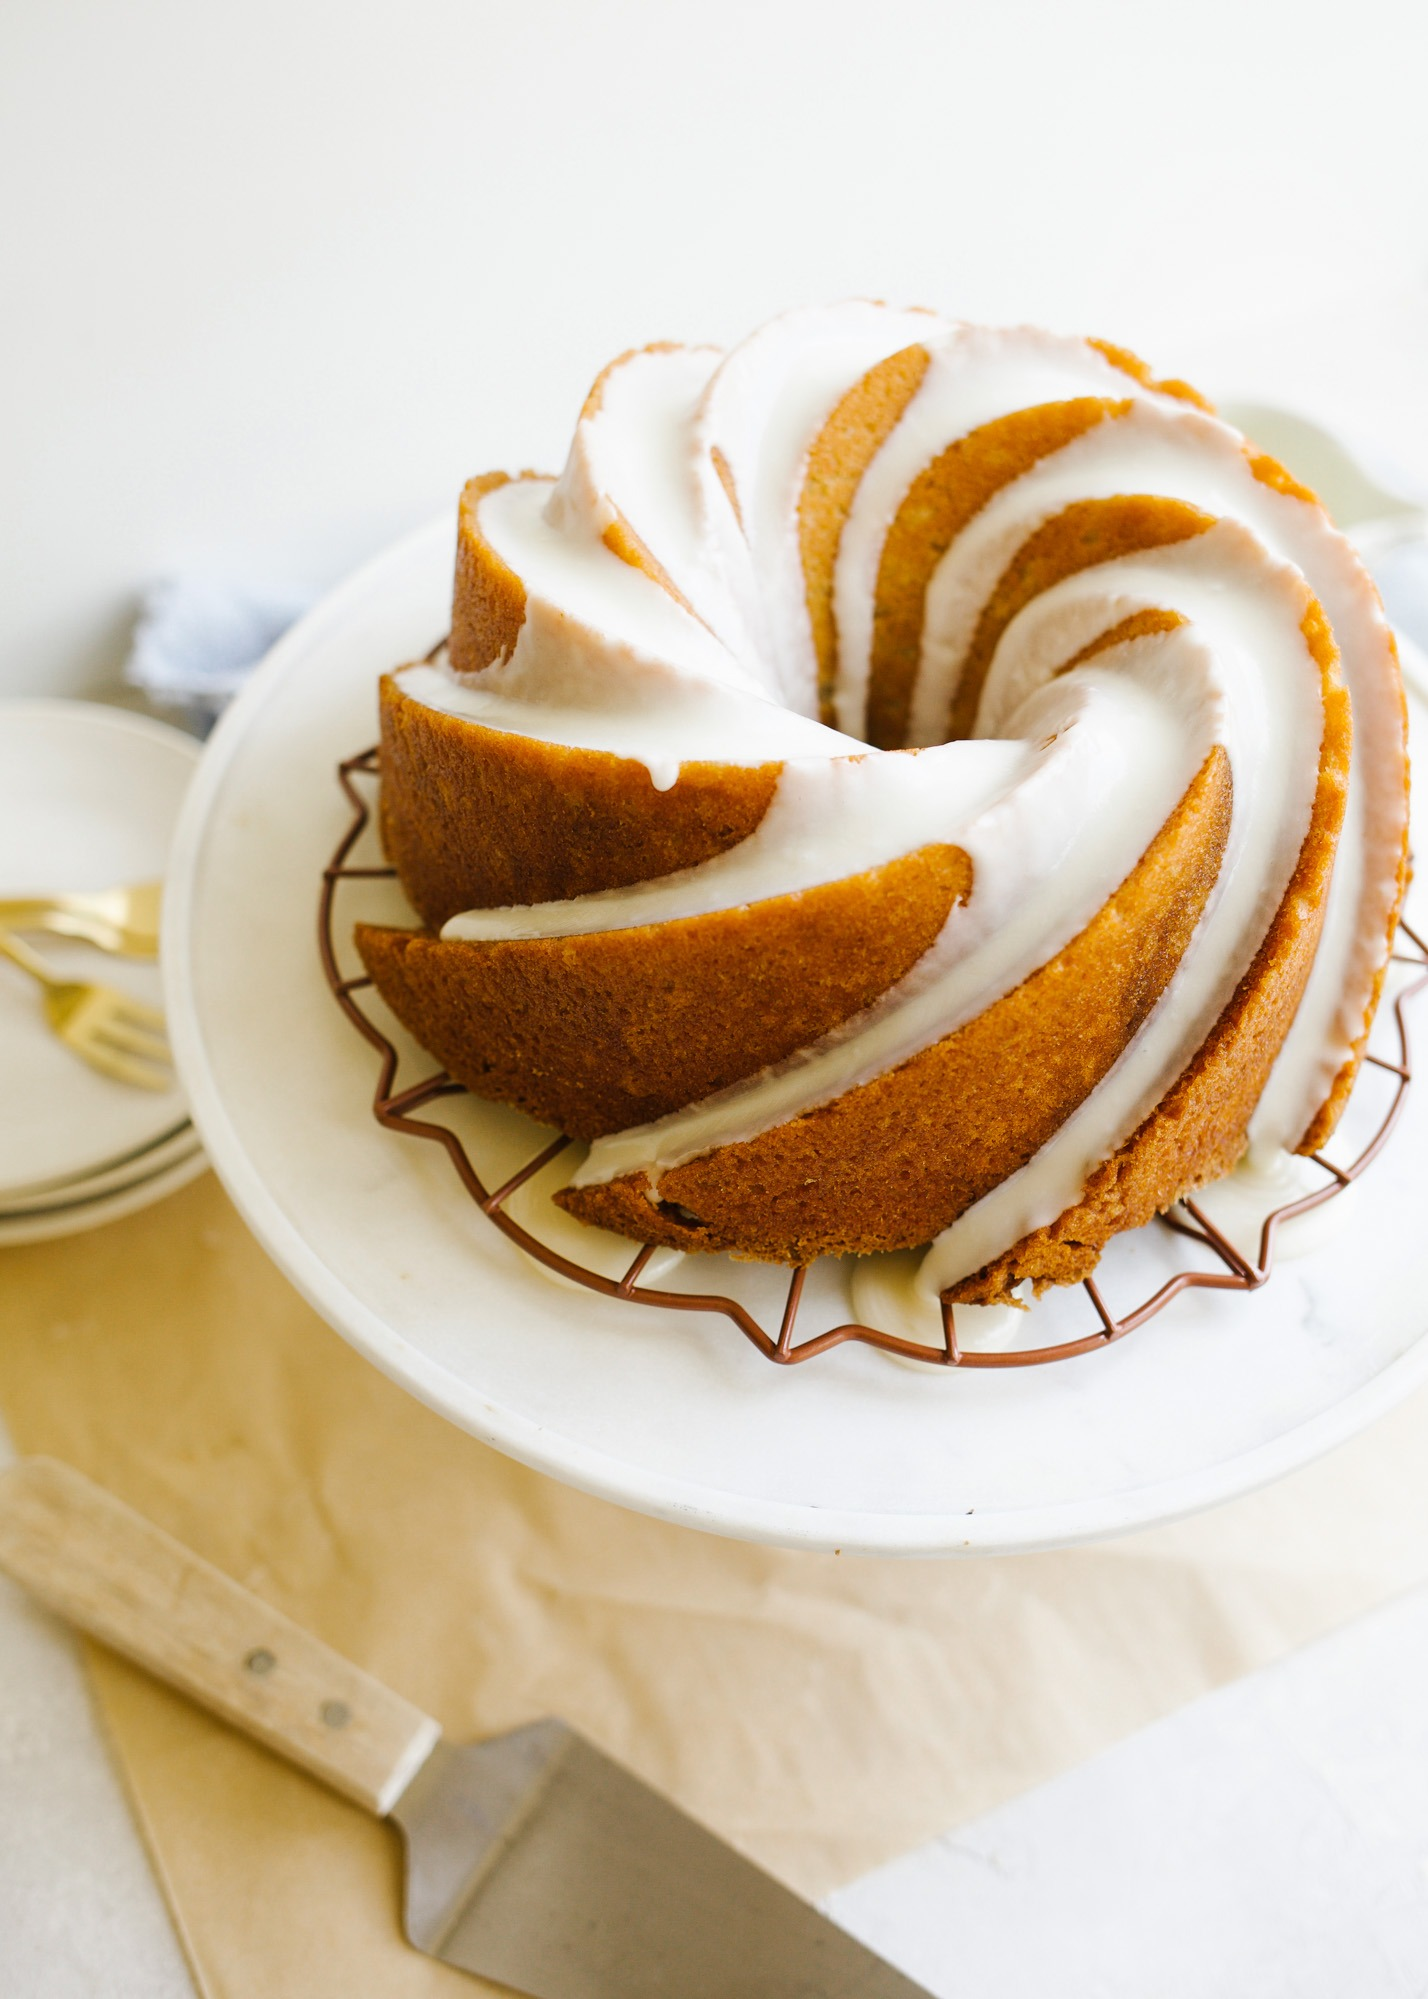 Bourbon Bundt Cake by Kate Wood. This is a boozy and moist bundt cake make with Kentucky whiskey and a bourbon glaze. The cake is fluffy and tall and serves as a great breakfast or brunch or dessert item! It comes together in one bowl and can be made in advance. Learn more about this fall simple cake on thewoodandspoon.com